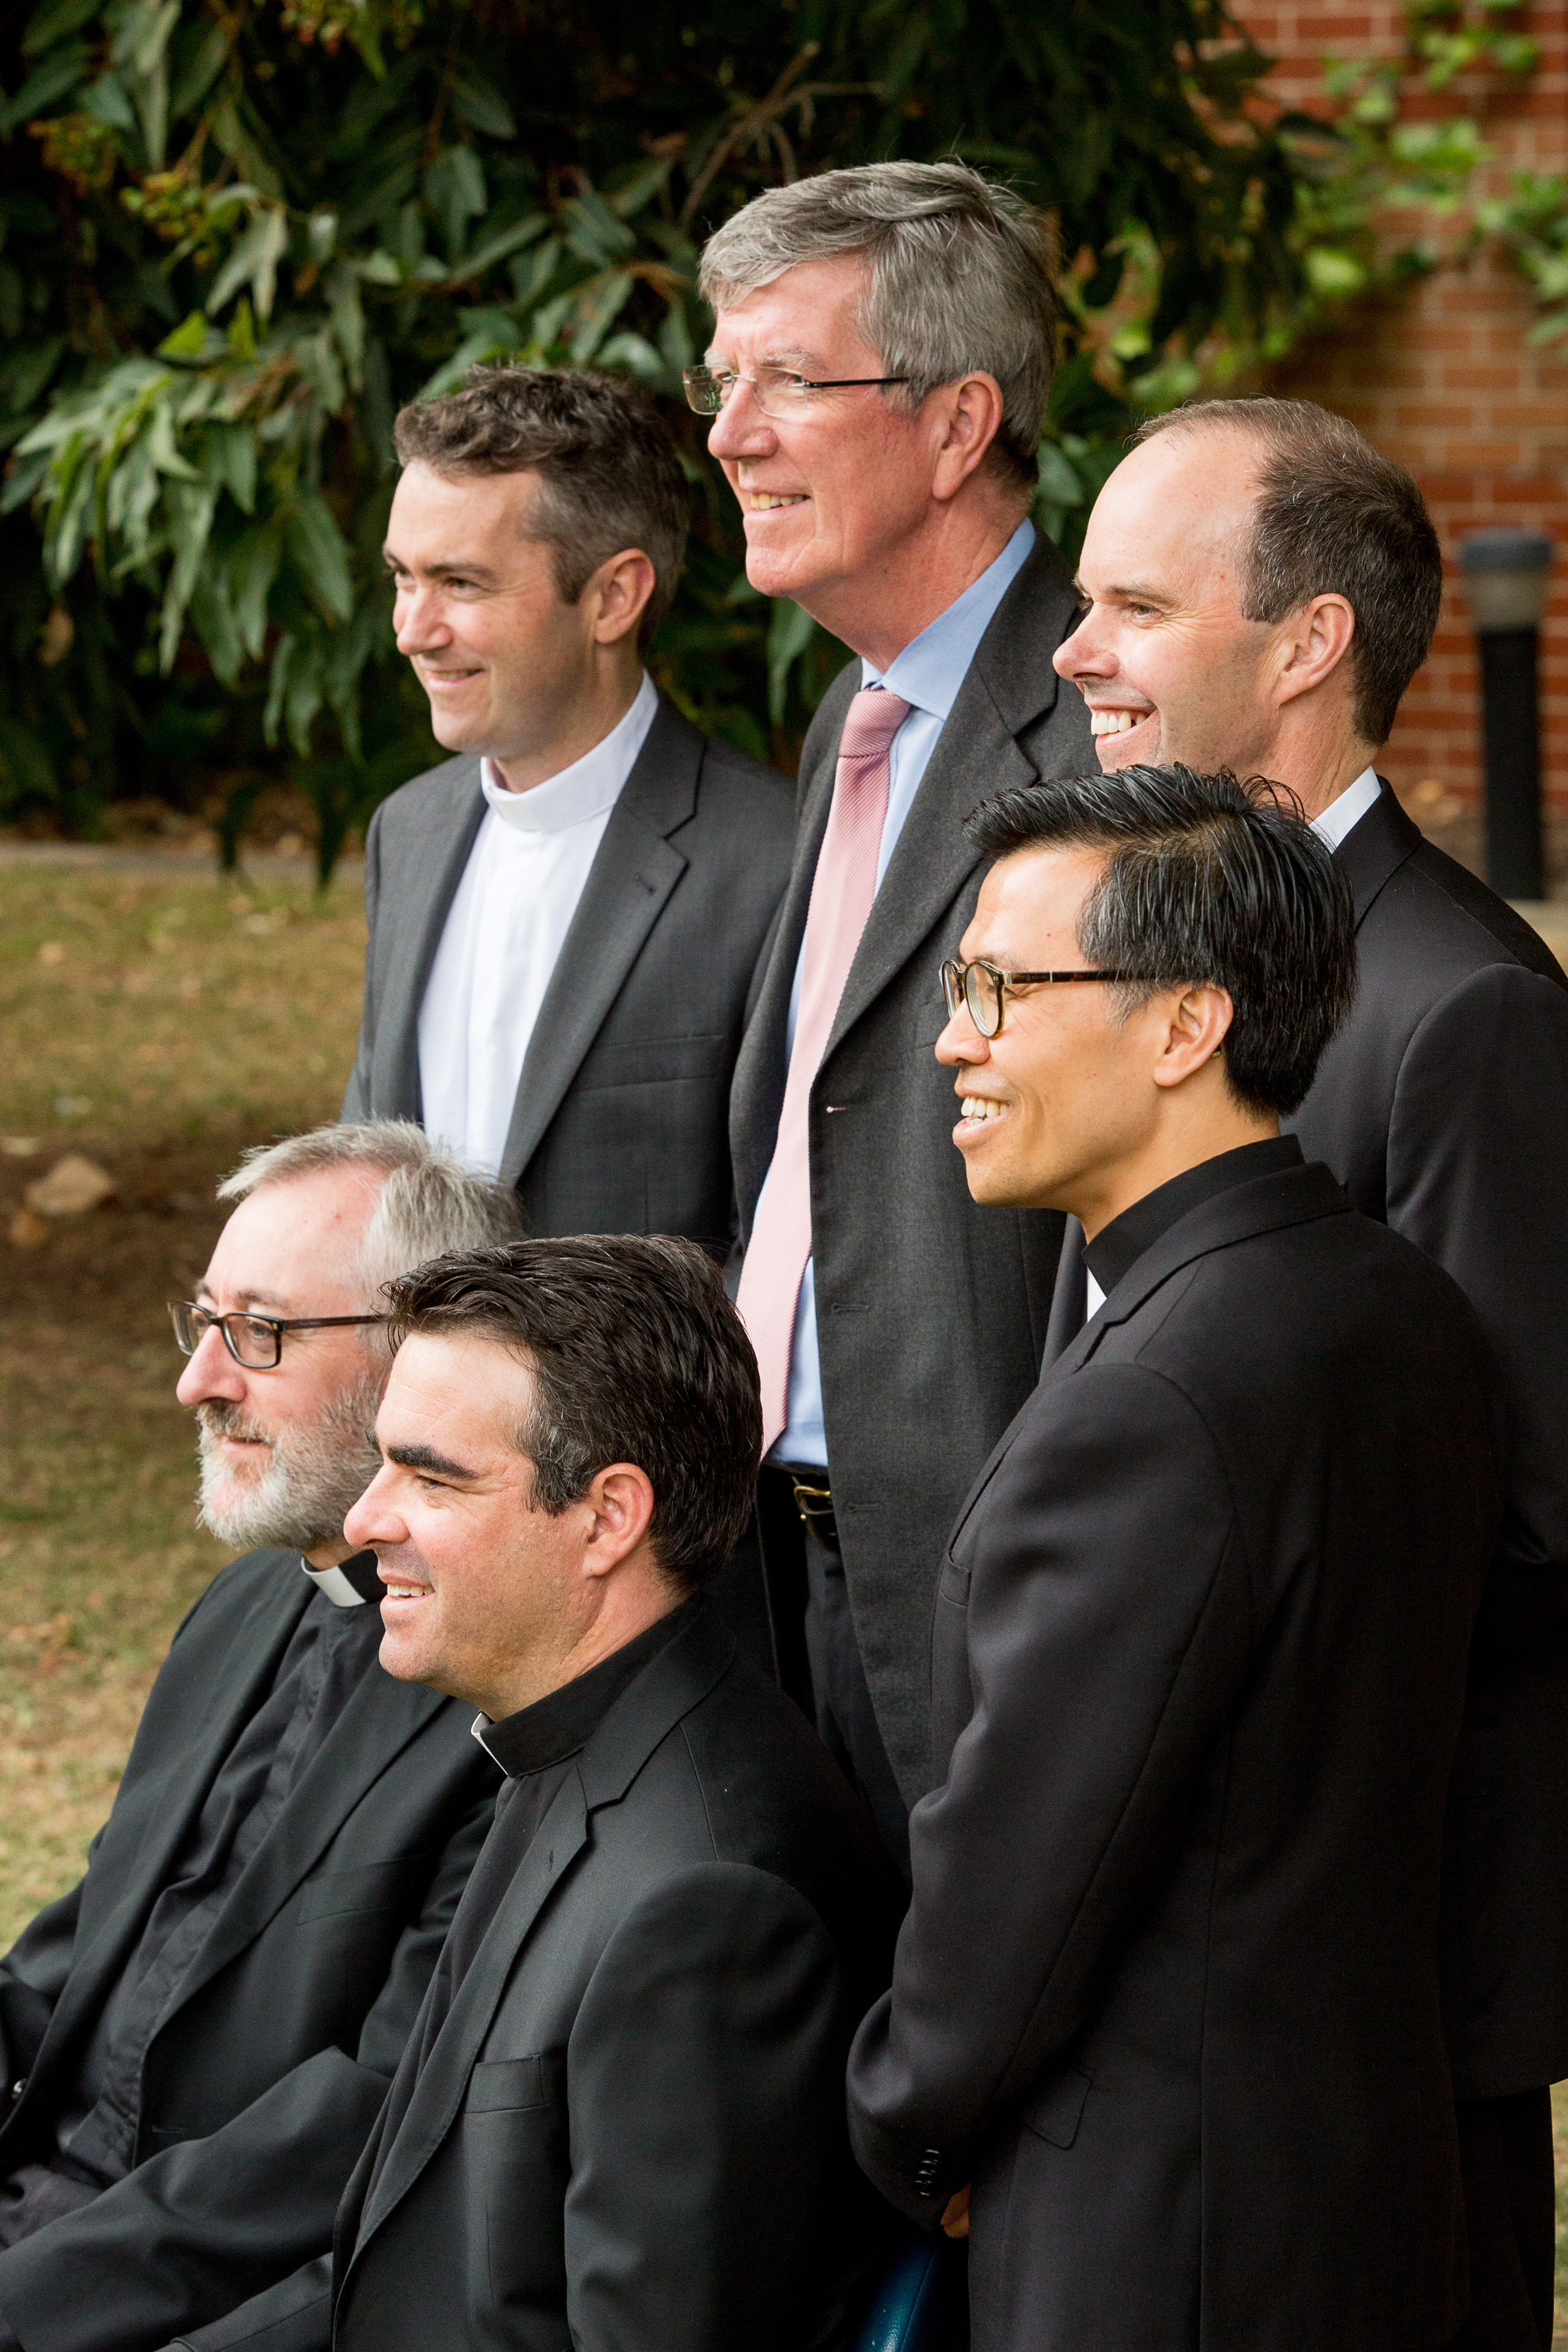 Fr Jake Mudge, far back left, with the staff at Corpus Christi College.